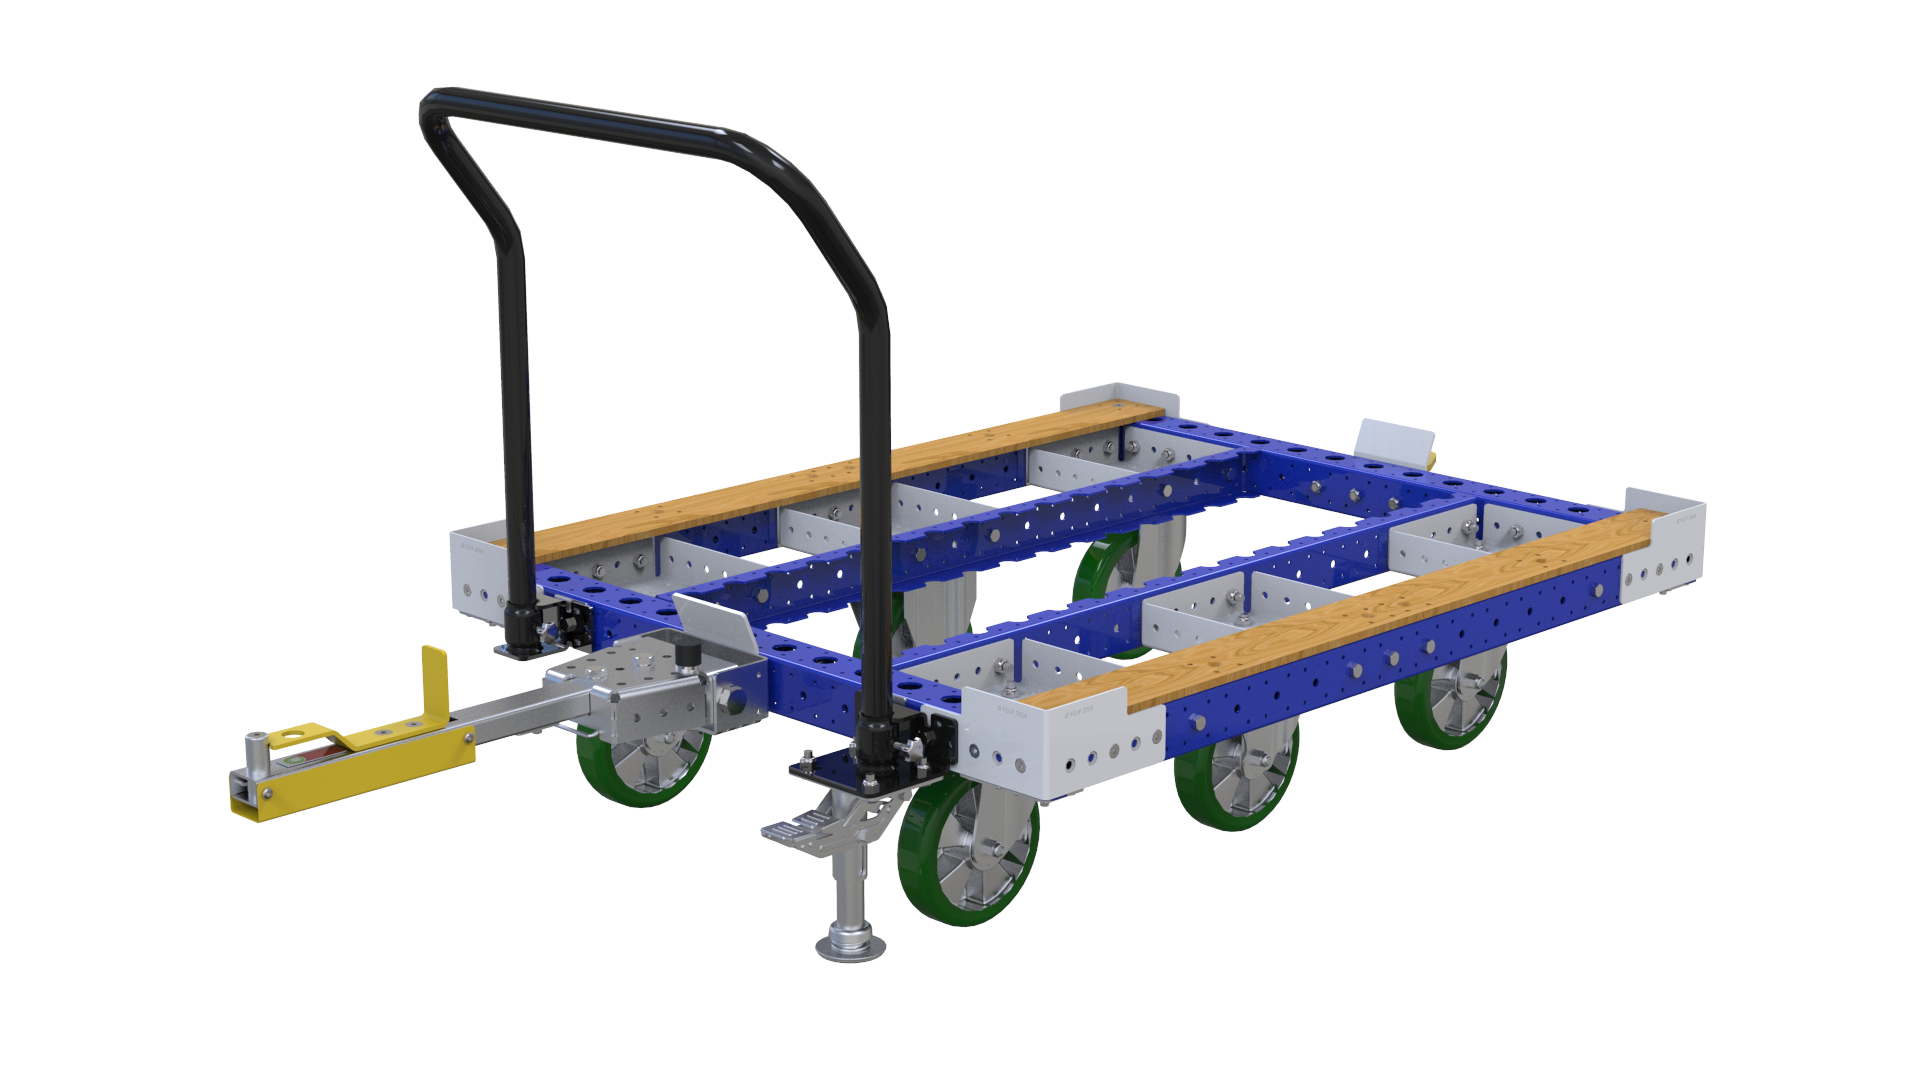 standard tugger cart designed by FlexQube